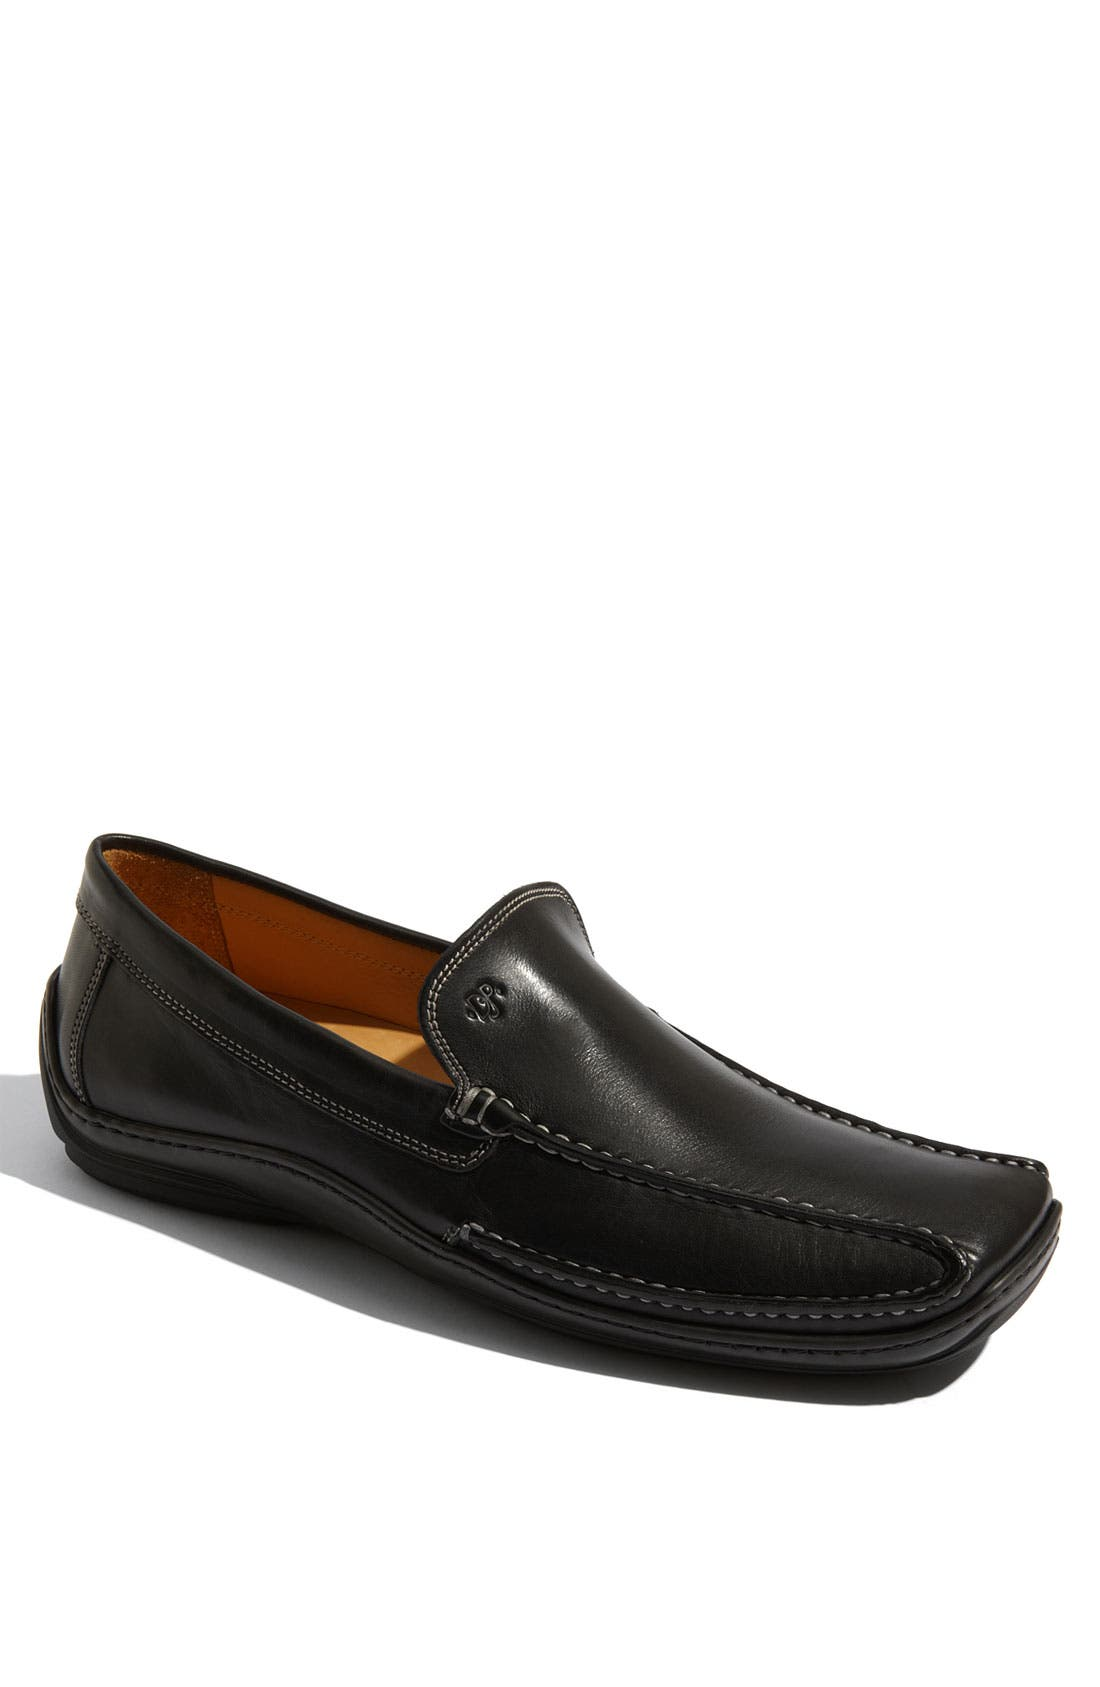 Alternate Image 1 Selected - Donald J Pliner 'Eive' Slip-On